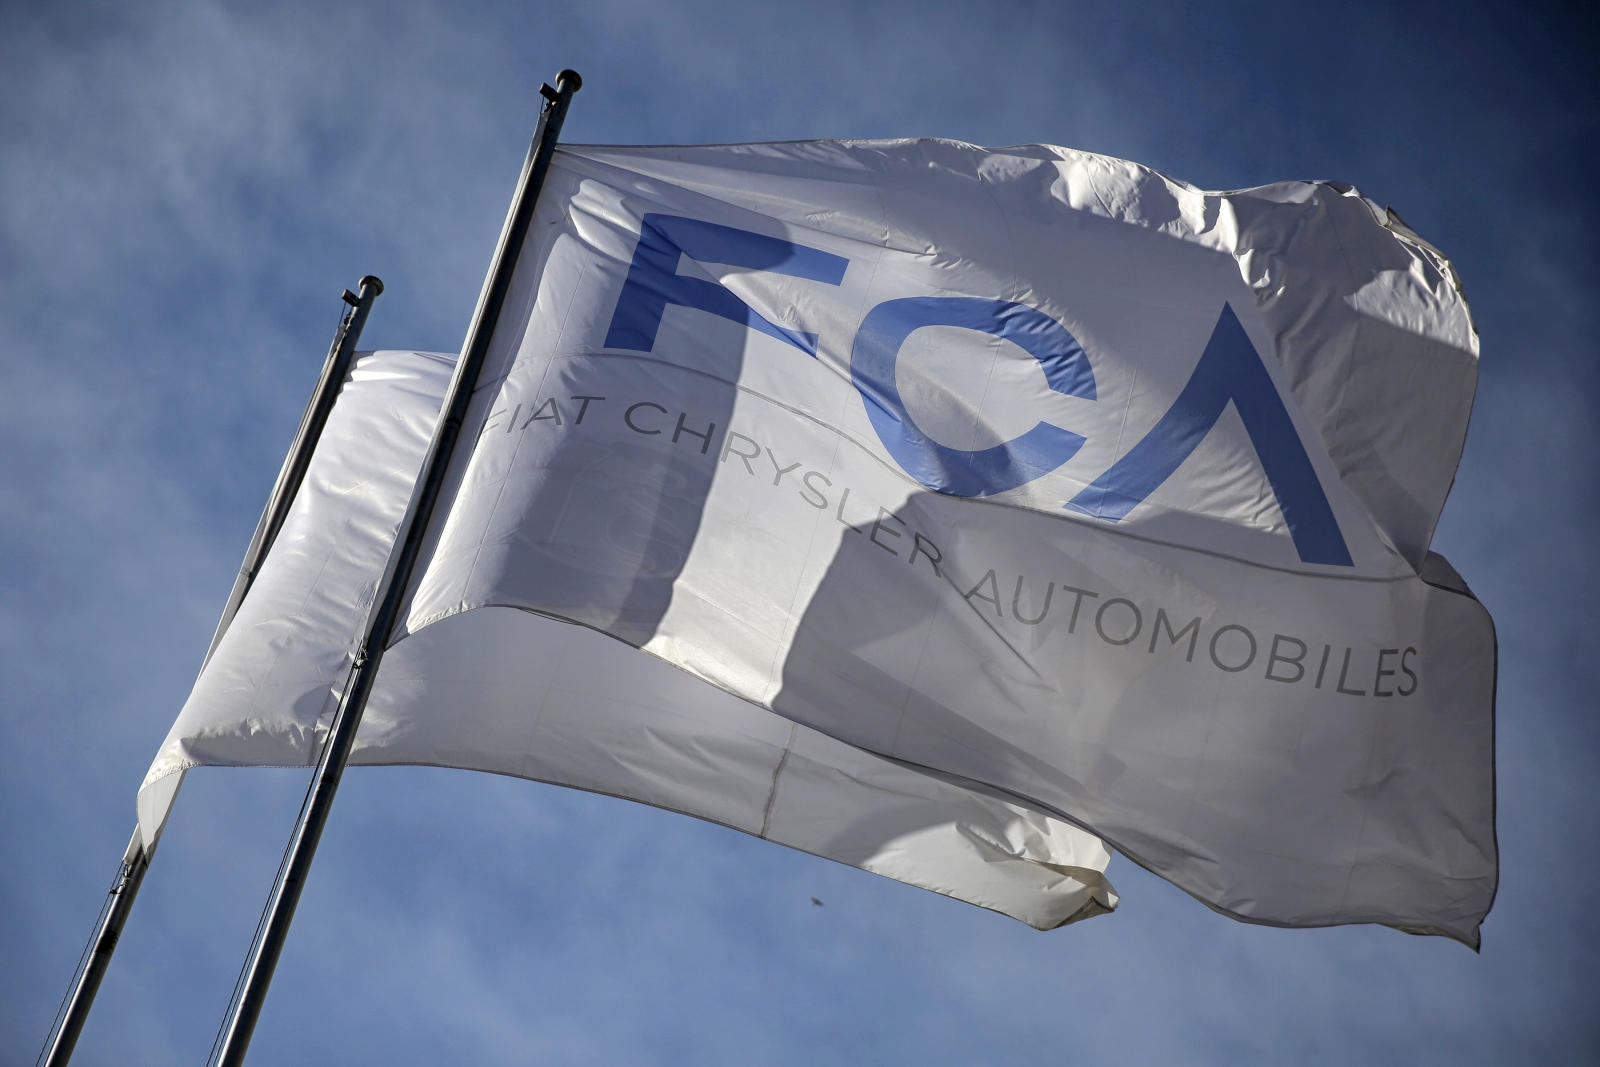 Fiat Chrysler recalls 1.25 million trucks